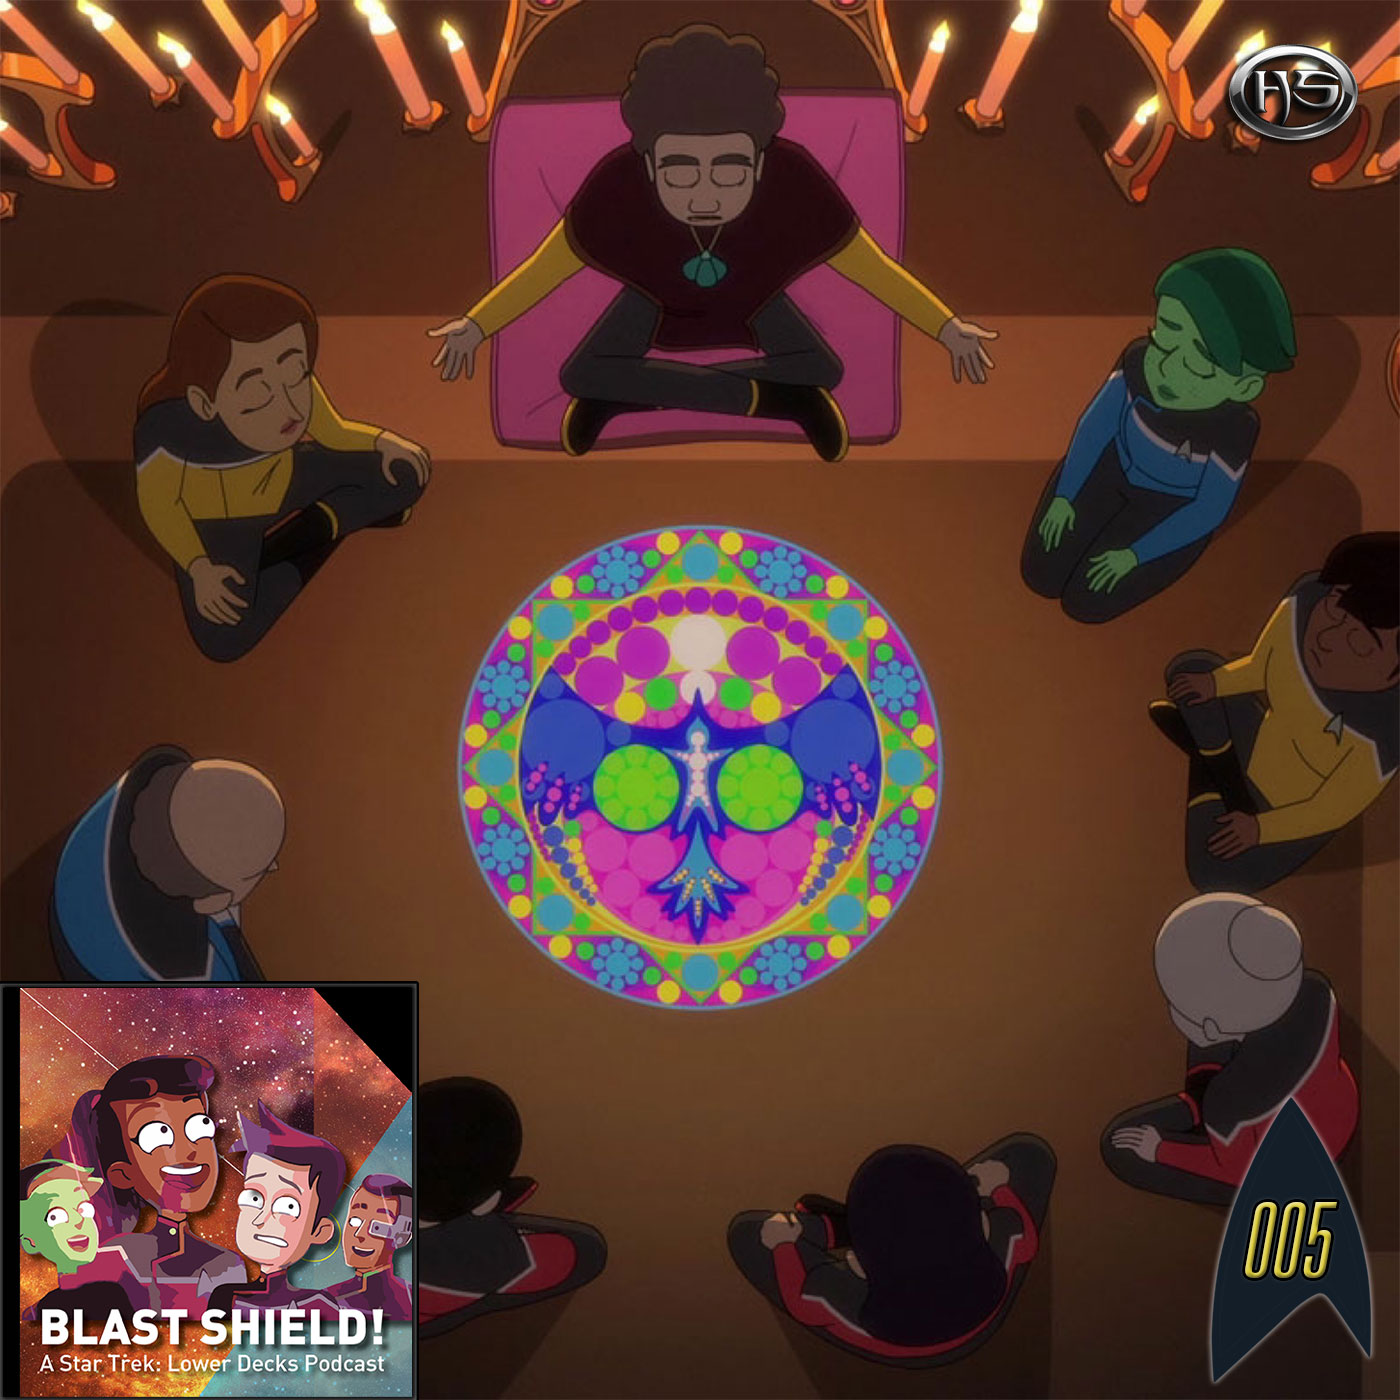 Blast Shield! Episode 5